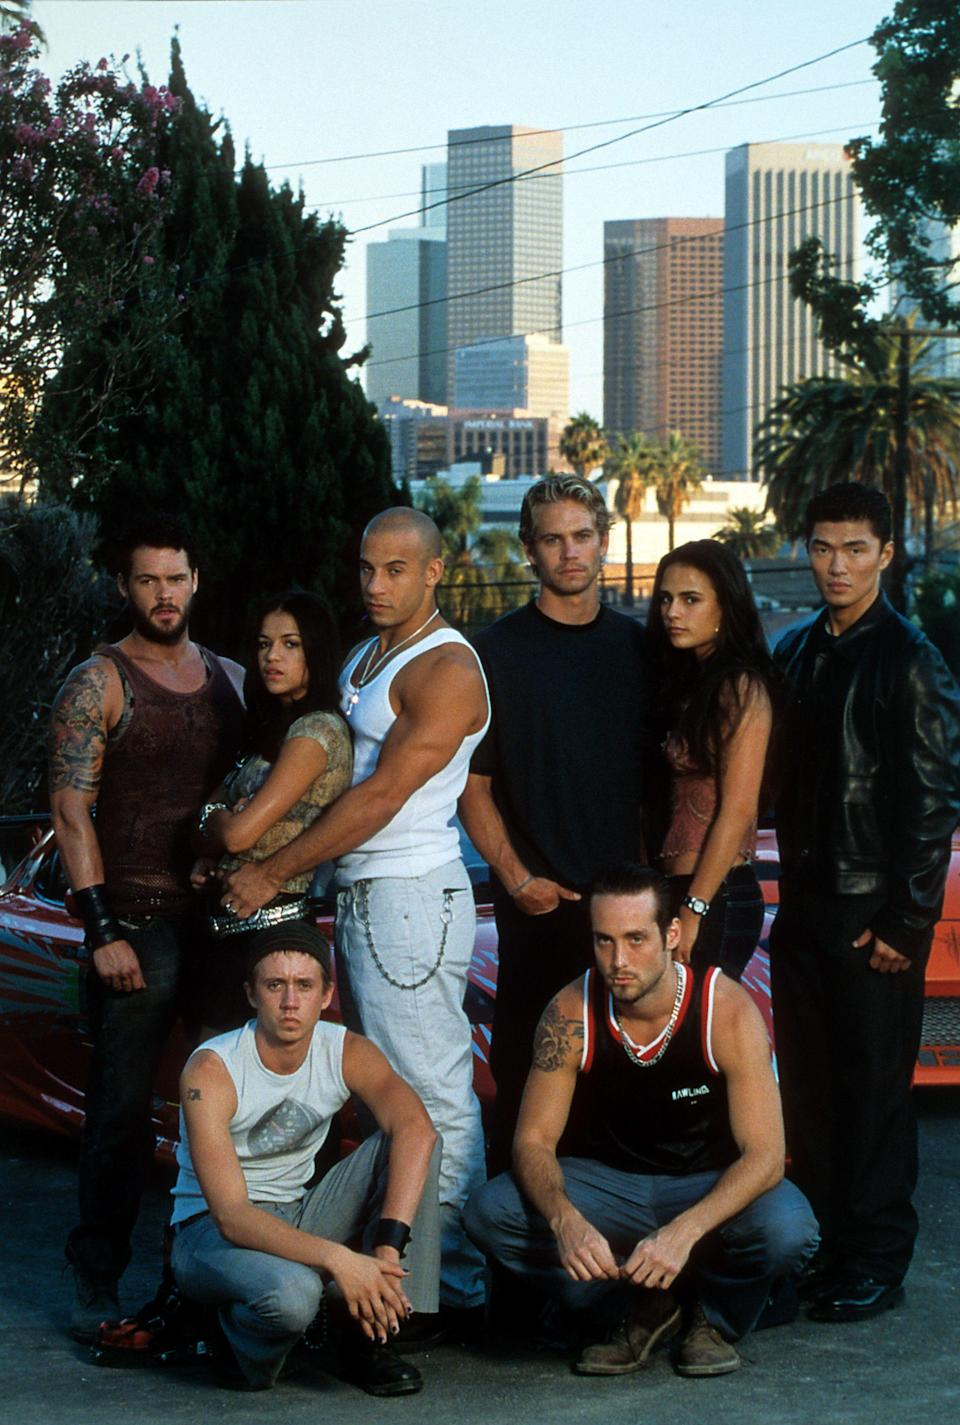 """<p>Whether you're a die-hard <em><a href=""""https://www.esquire.com/entertainment/movies/g28580600/fast-and-the-furious-movies-ranked/"""" rel=""""nofollow noopener"""" target=""""_blank"""" data-ylk=""""slk:Fast & Furious"""" class=""""link rapid-noclick-resp"""">Fast & Furious</a> </em>fan or you just really love Vin Diesel, there's no denying that <em>The Fast and the Furious </em>franchise has delivered quality action films for the past two decades. The success isn't just due to the stunts. The <a href=""""https://www.esquire.com/entertainment/movies/a32619058/justin-lin-f9-fast-and-furious-han-back-interview/"""" rel=""""nofollow noopener"""" target=""""_blank"""" data-ylk=""""slk:chemistry between the characters"""" class=""""link rapid-noclick-resp"""">chemistry between the characters</a> (and actors) makes the series compelling, but there's an unexpected sense of heart that may be from the real-life bonds made over the years. (The heartwarming sentiments after <a href=""""https://www.esquire.com/entertainment/movies/a36832748/paul-walker-brian-oconner-fast-and-furious-9-blue-nissan/"""" rel=""""nofollow noopener"""" target=""""_blank"""" data-ylk=""""slk:Paul Walker's death"""" class=""""link rapid-noclick-resp"""">Paul Walker's death</a> and the reappearance of former cast members in sequel after sequel speak to that.) But just how far have they come from their first <em>Fast and Furious </em>film? We're tracking down the original cast members and our favorites throughout the series for a look at <em>The Fast and the Furious</em> stars, then and now. </p>"""